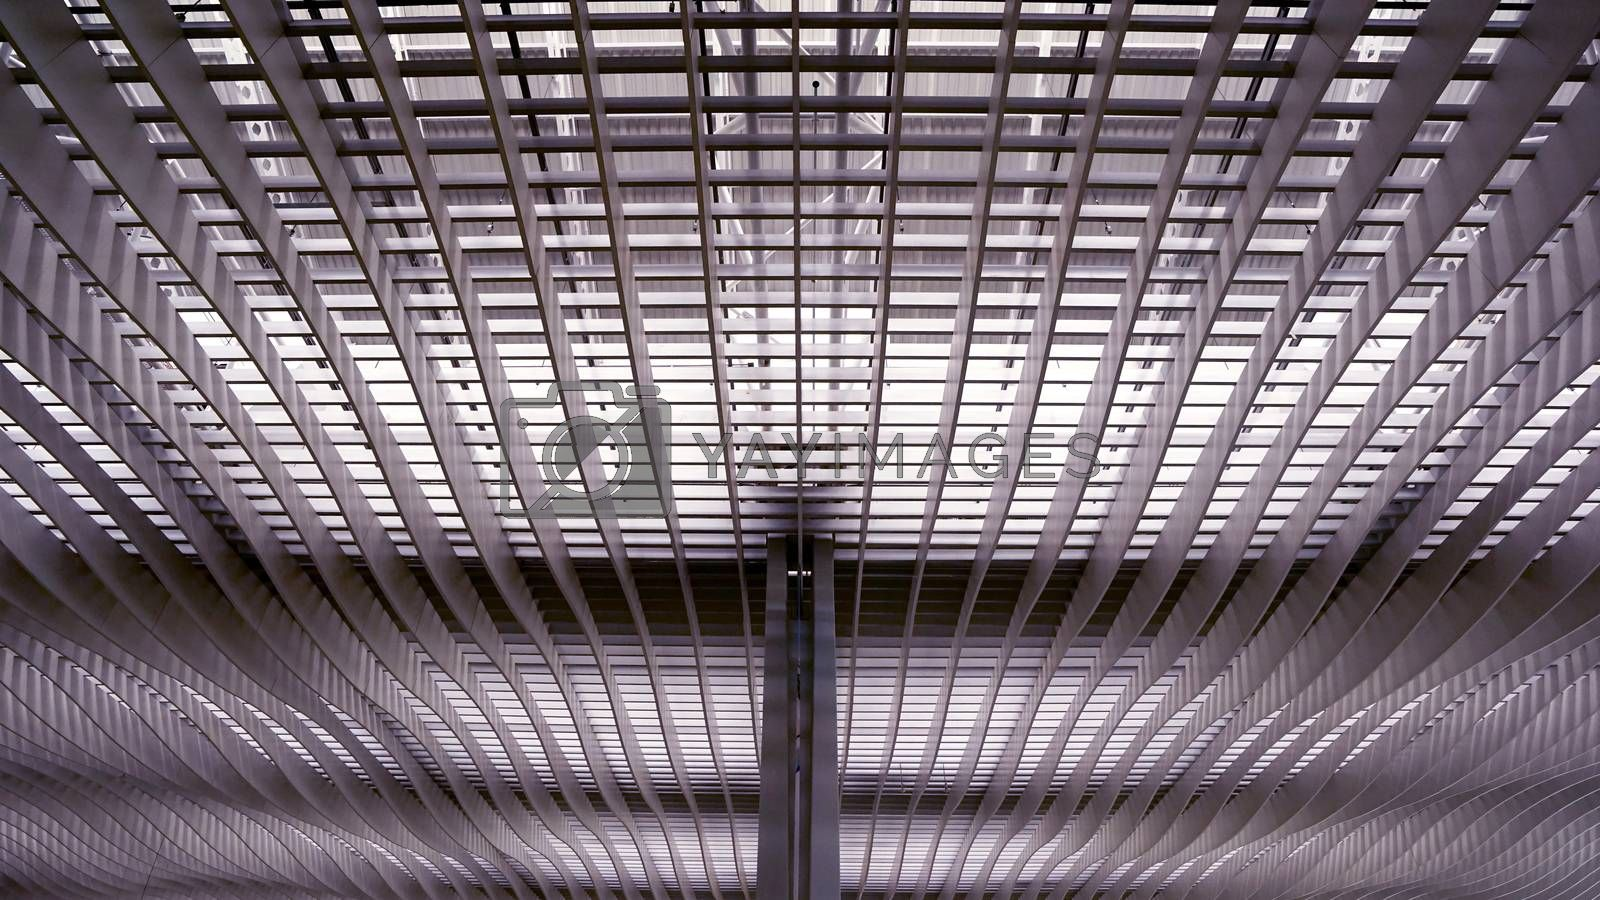 The interior and ceiling of airport archtecture terminal building